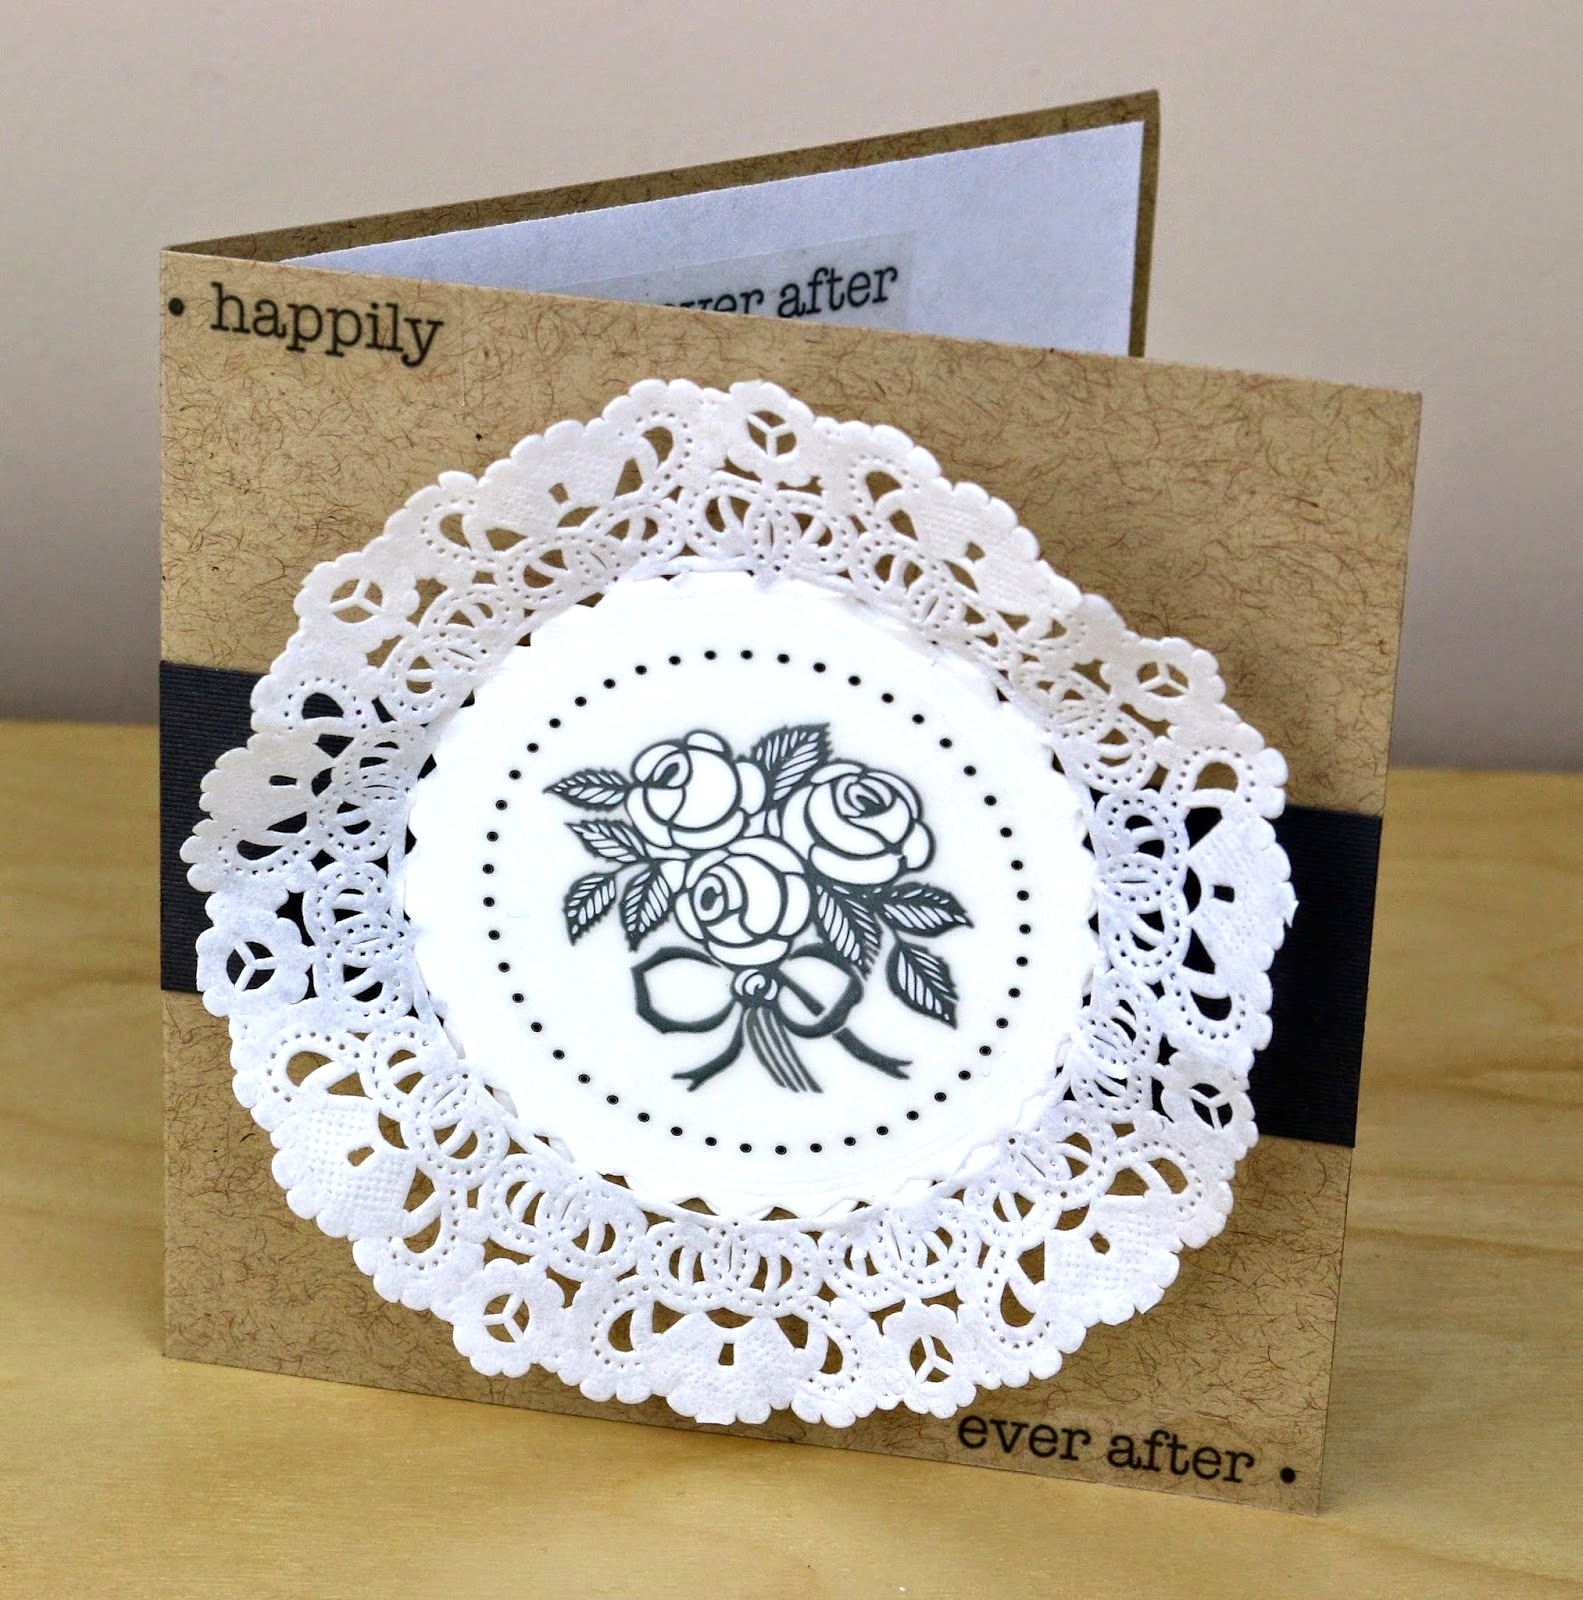 SRM Stickers Blog - Wedding Table Setting by Cathy A. - #wedding #favors #table #doilies #punchedpieces #stickers #love #clearcontainers